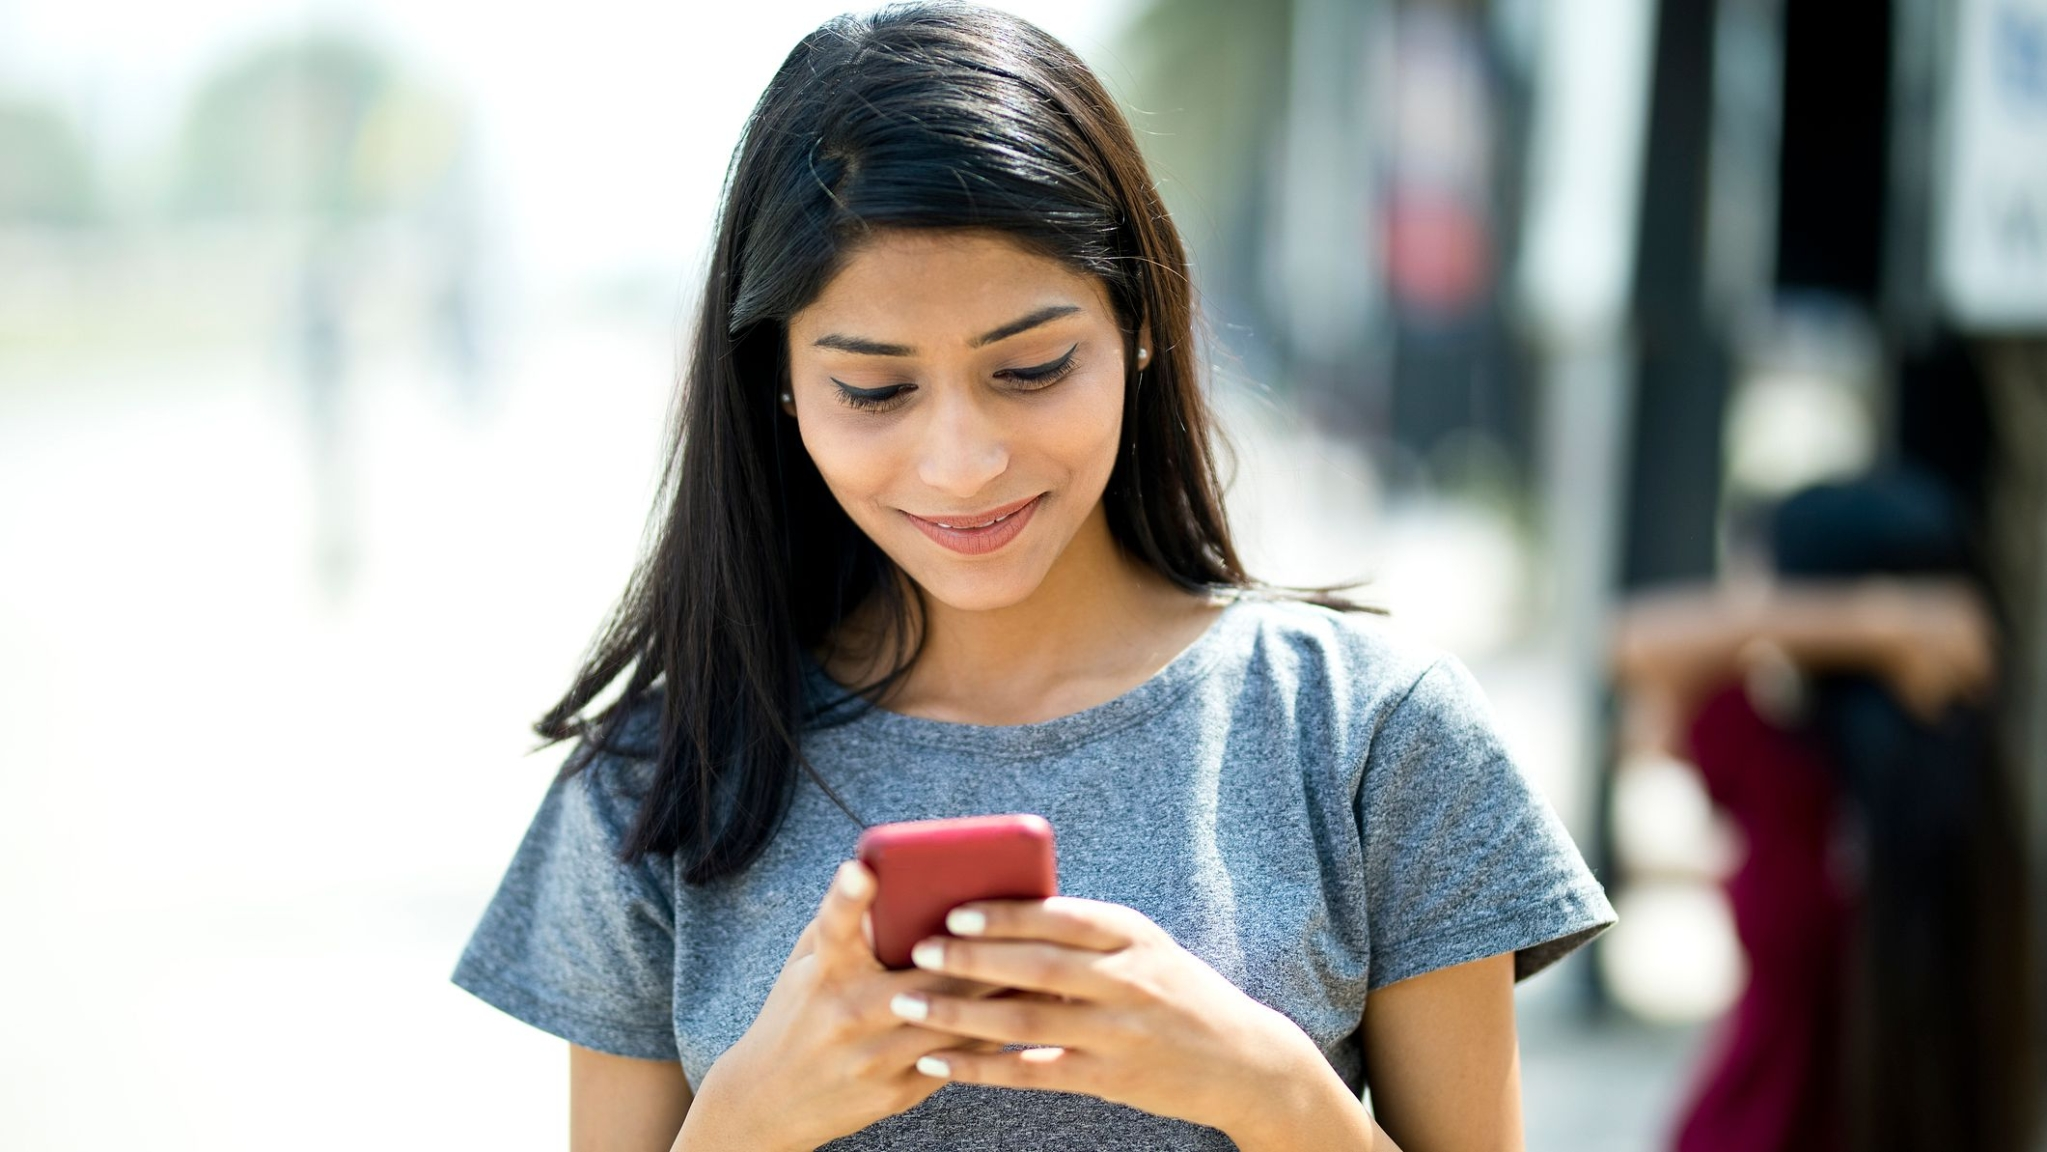 Telcos May Extend Validity for Prepaid Mobile Users Amid Lockdown